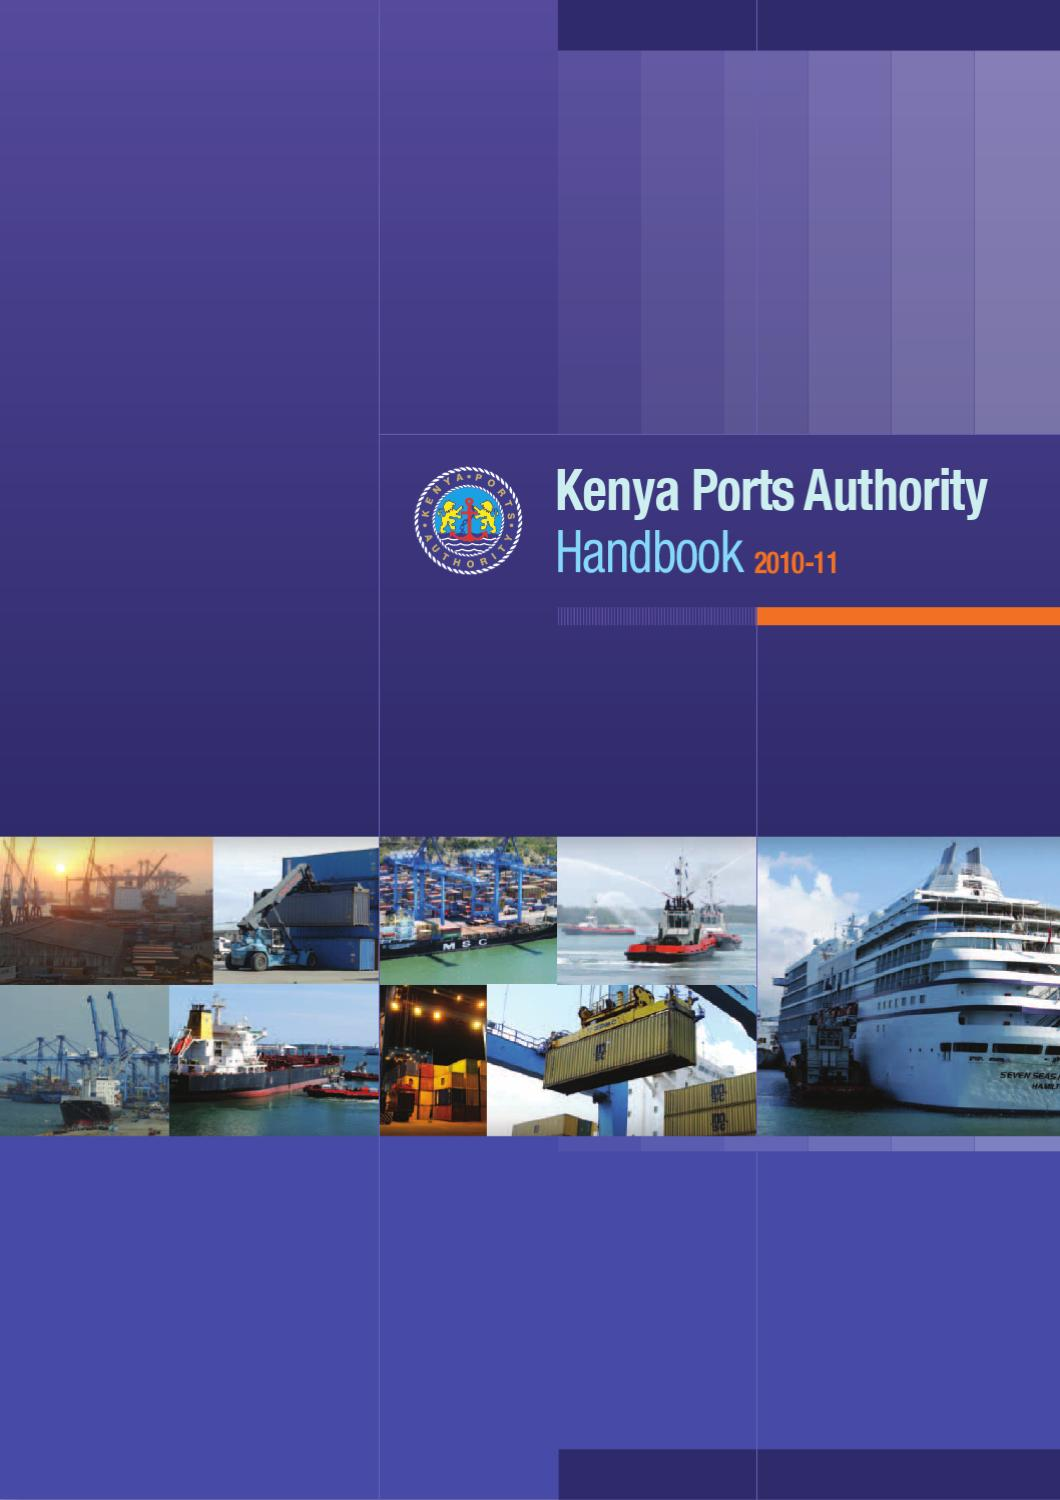 Kenya Ports Authority Handbook 2010-11 by Land & Marine Publications